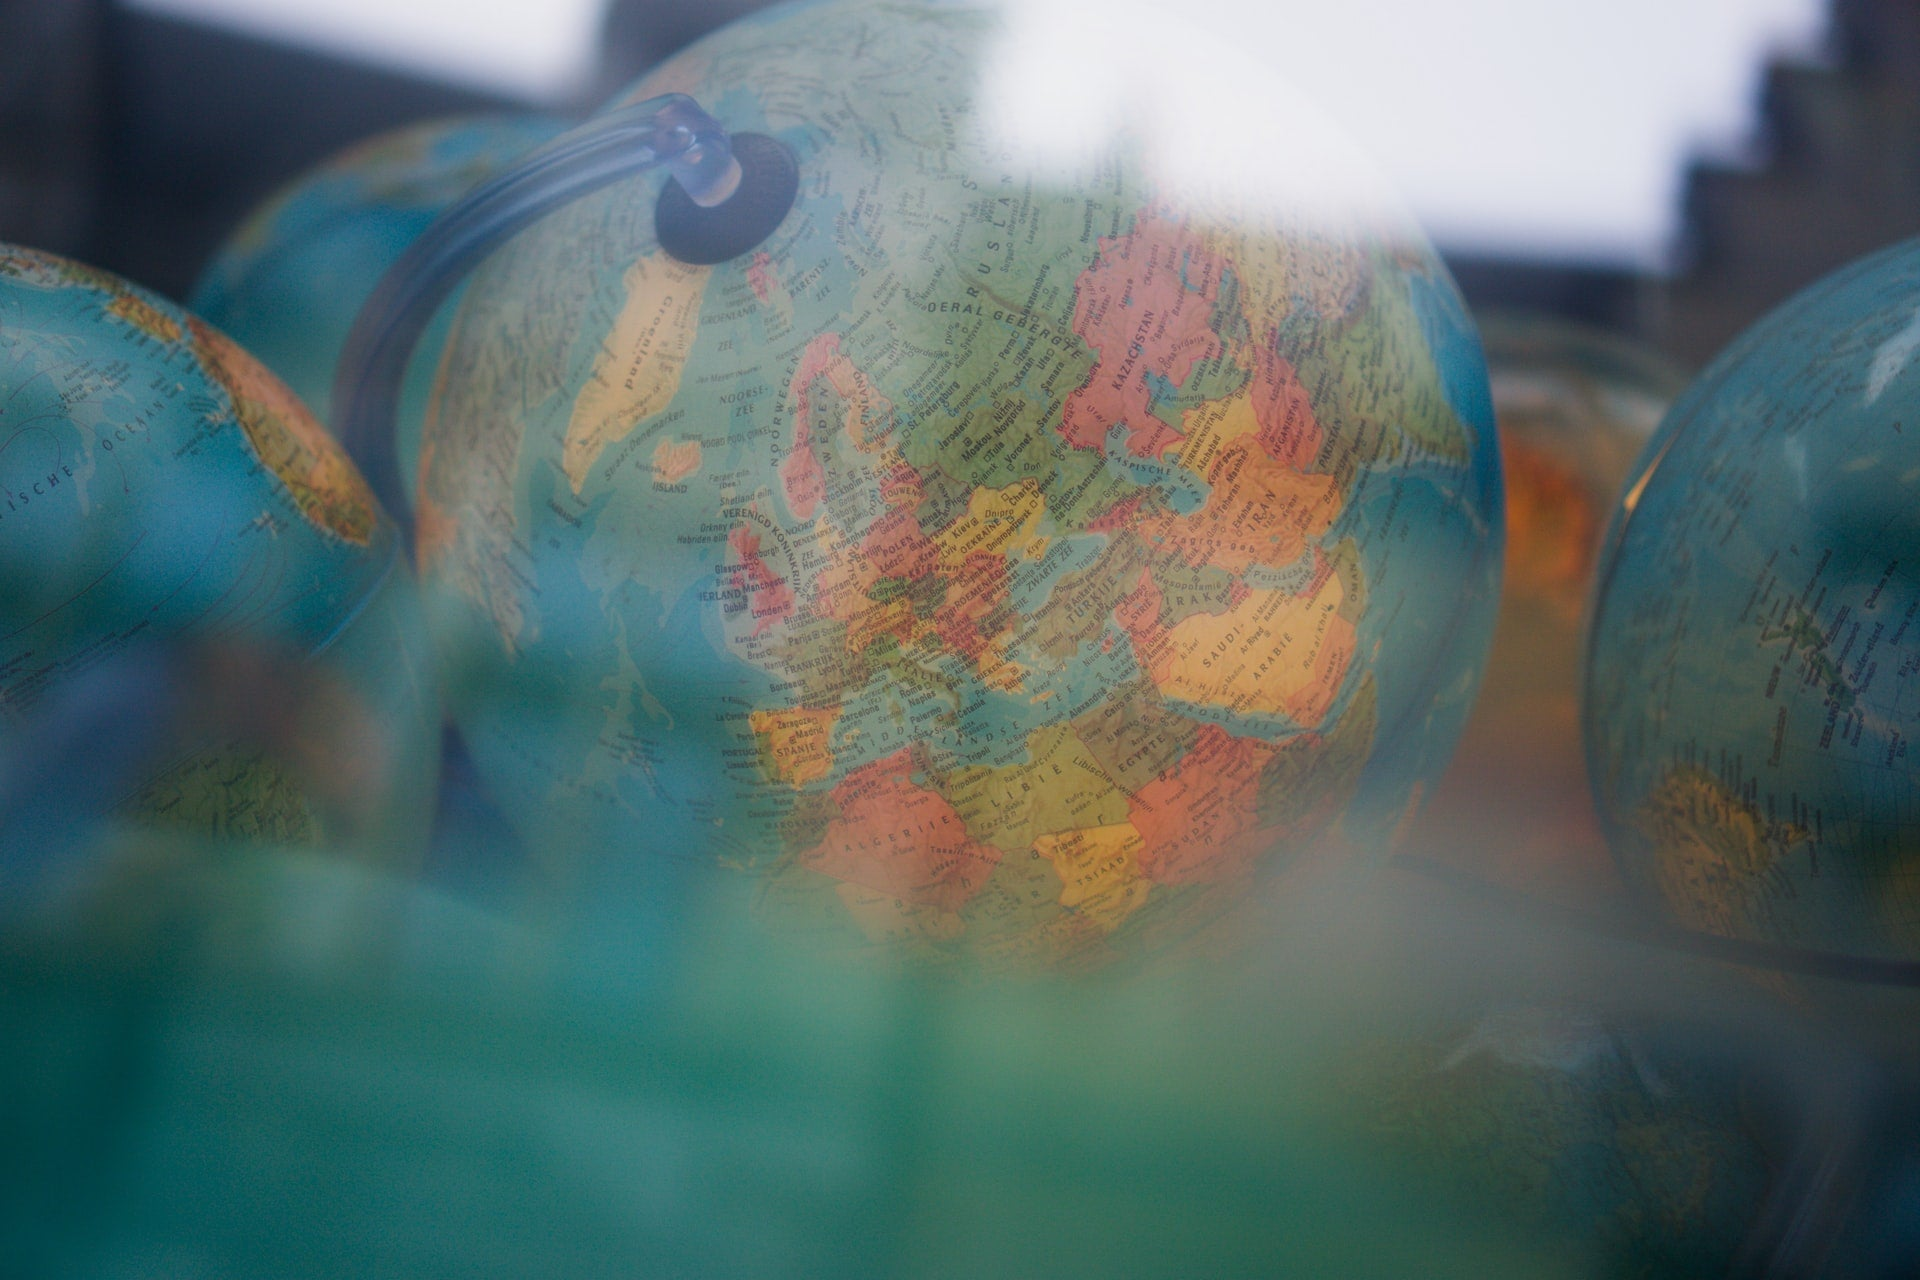 A picture of a globe, taken through some glass